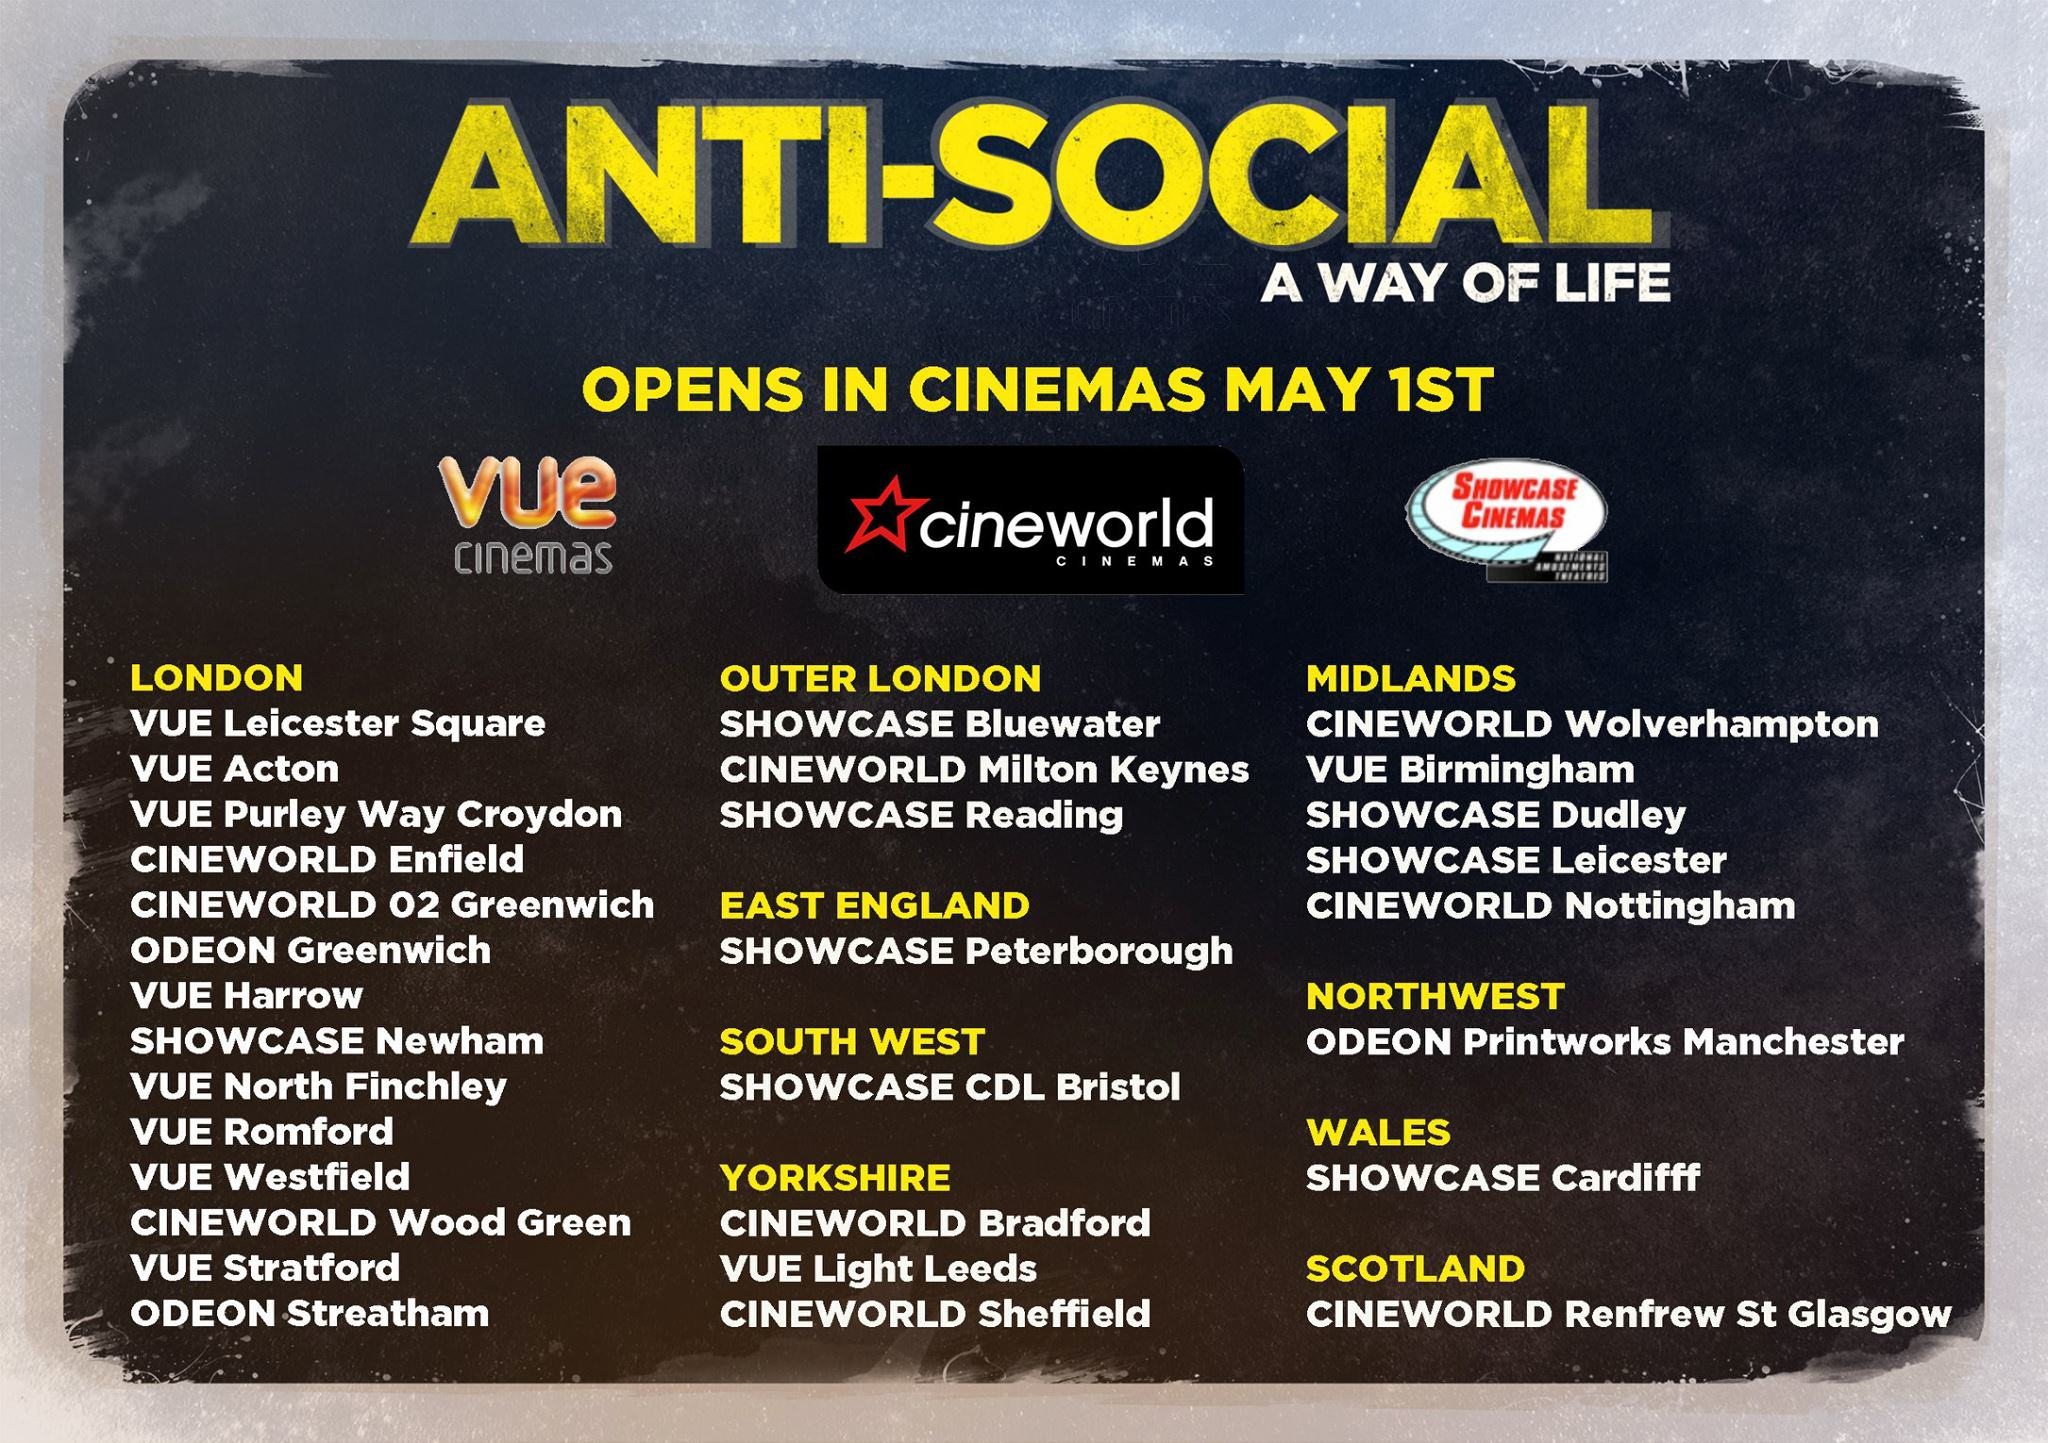 British Film Anti Social Couldnt Have Been Released At A Better Time 11200934 1633248966911458 3358046140751028952 o